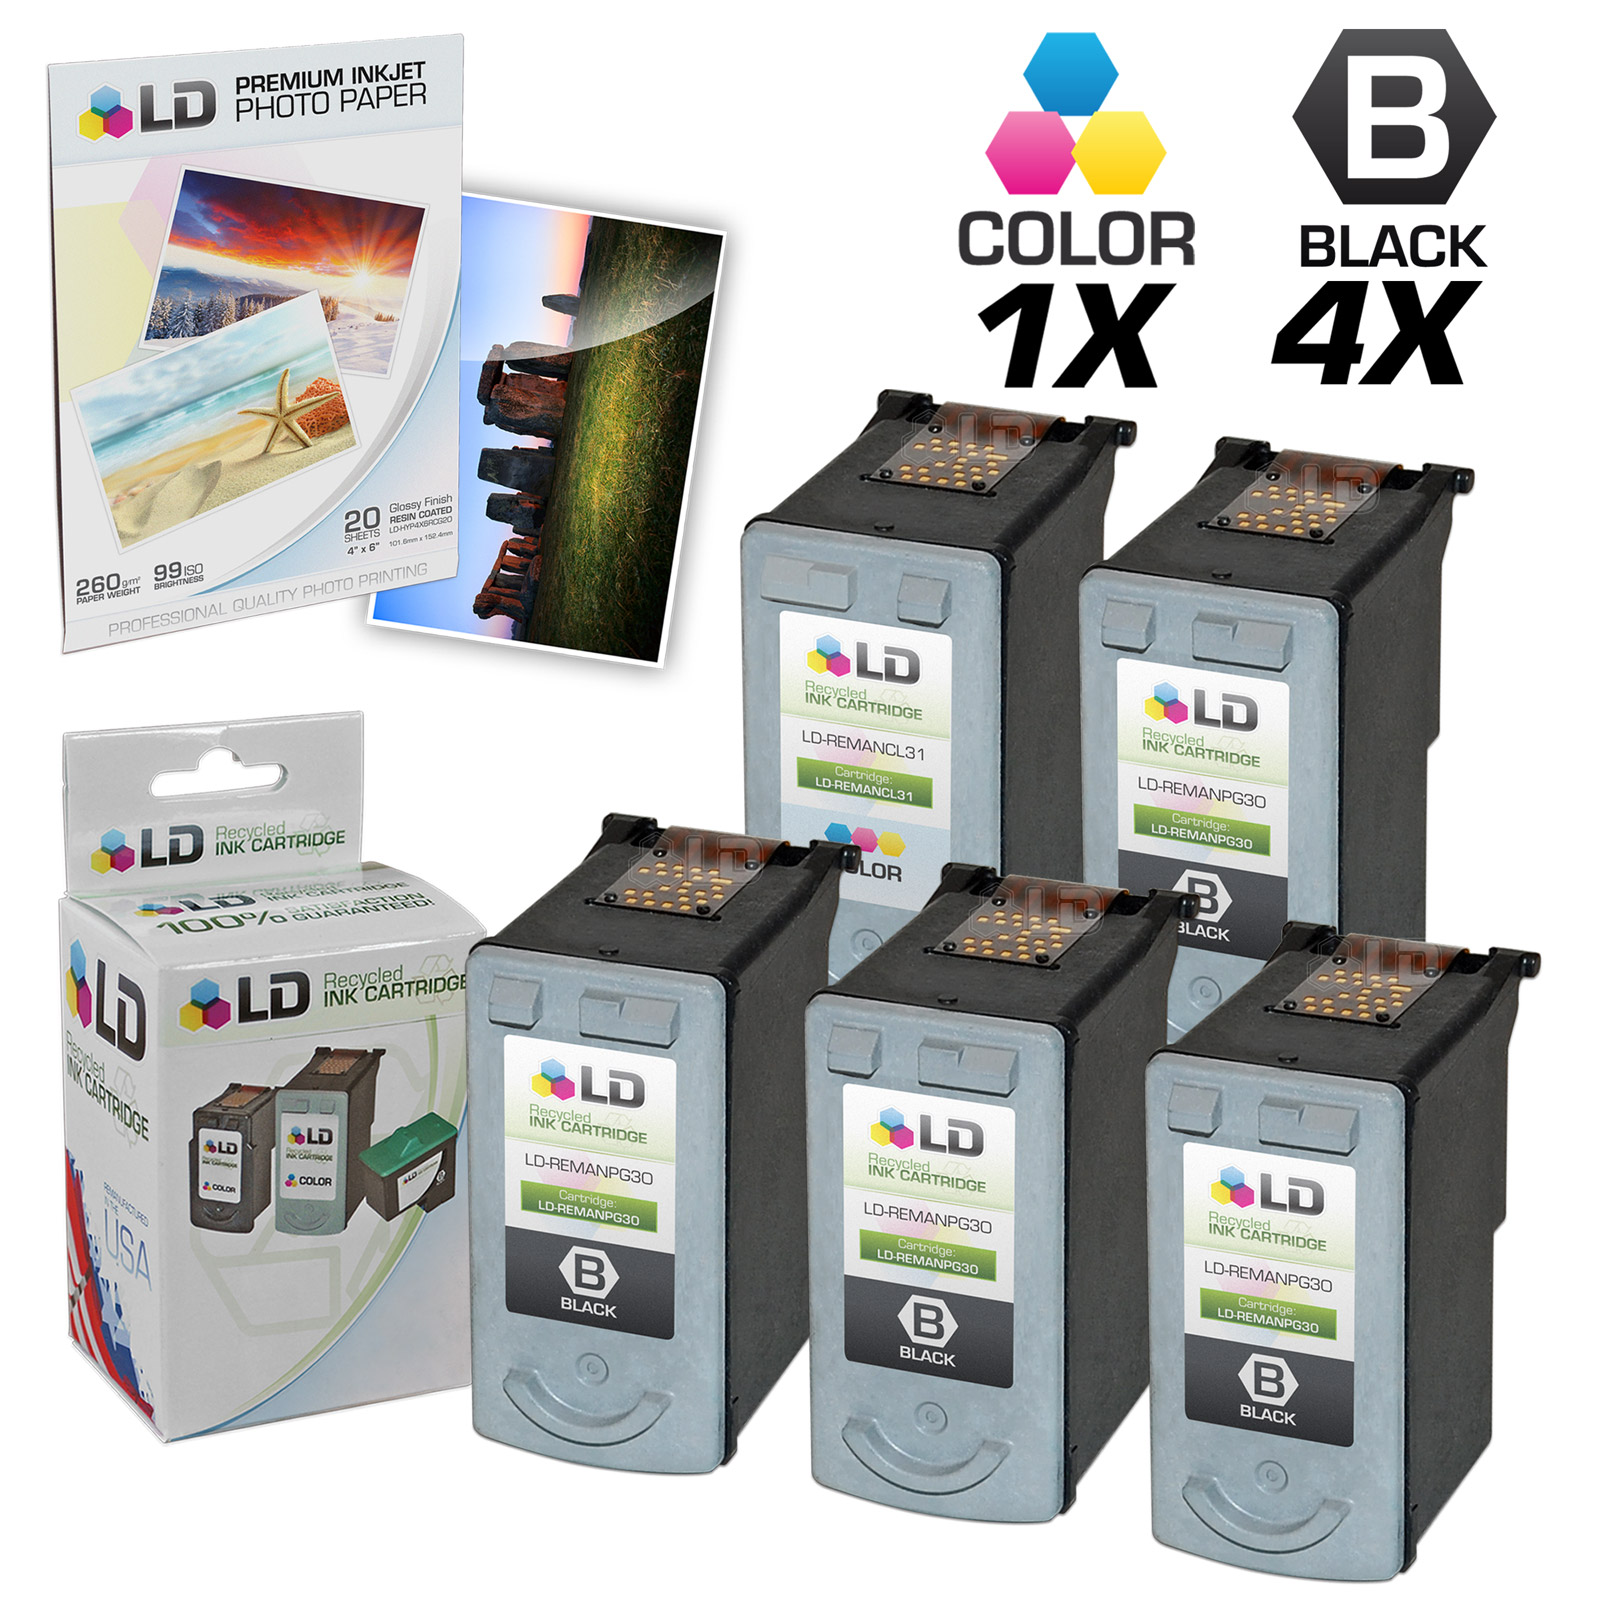 LD Remanufactured Canon #PG-30 & #CL-31 Combo Set - 4 Black #PG-30 and 1 Color #CL-31 & Free 20 Pack of LD Brand 4x6